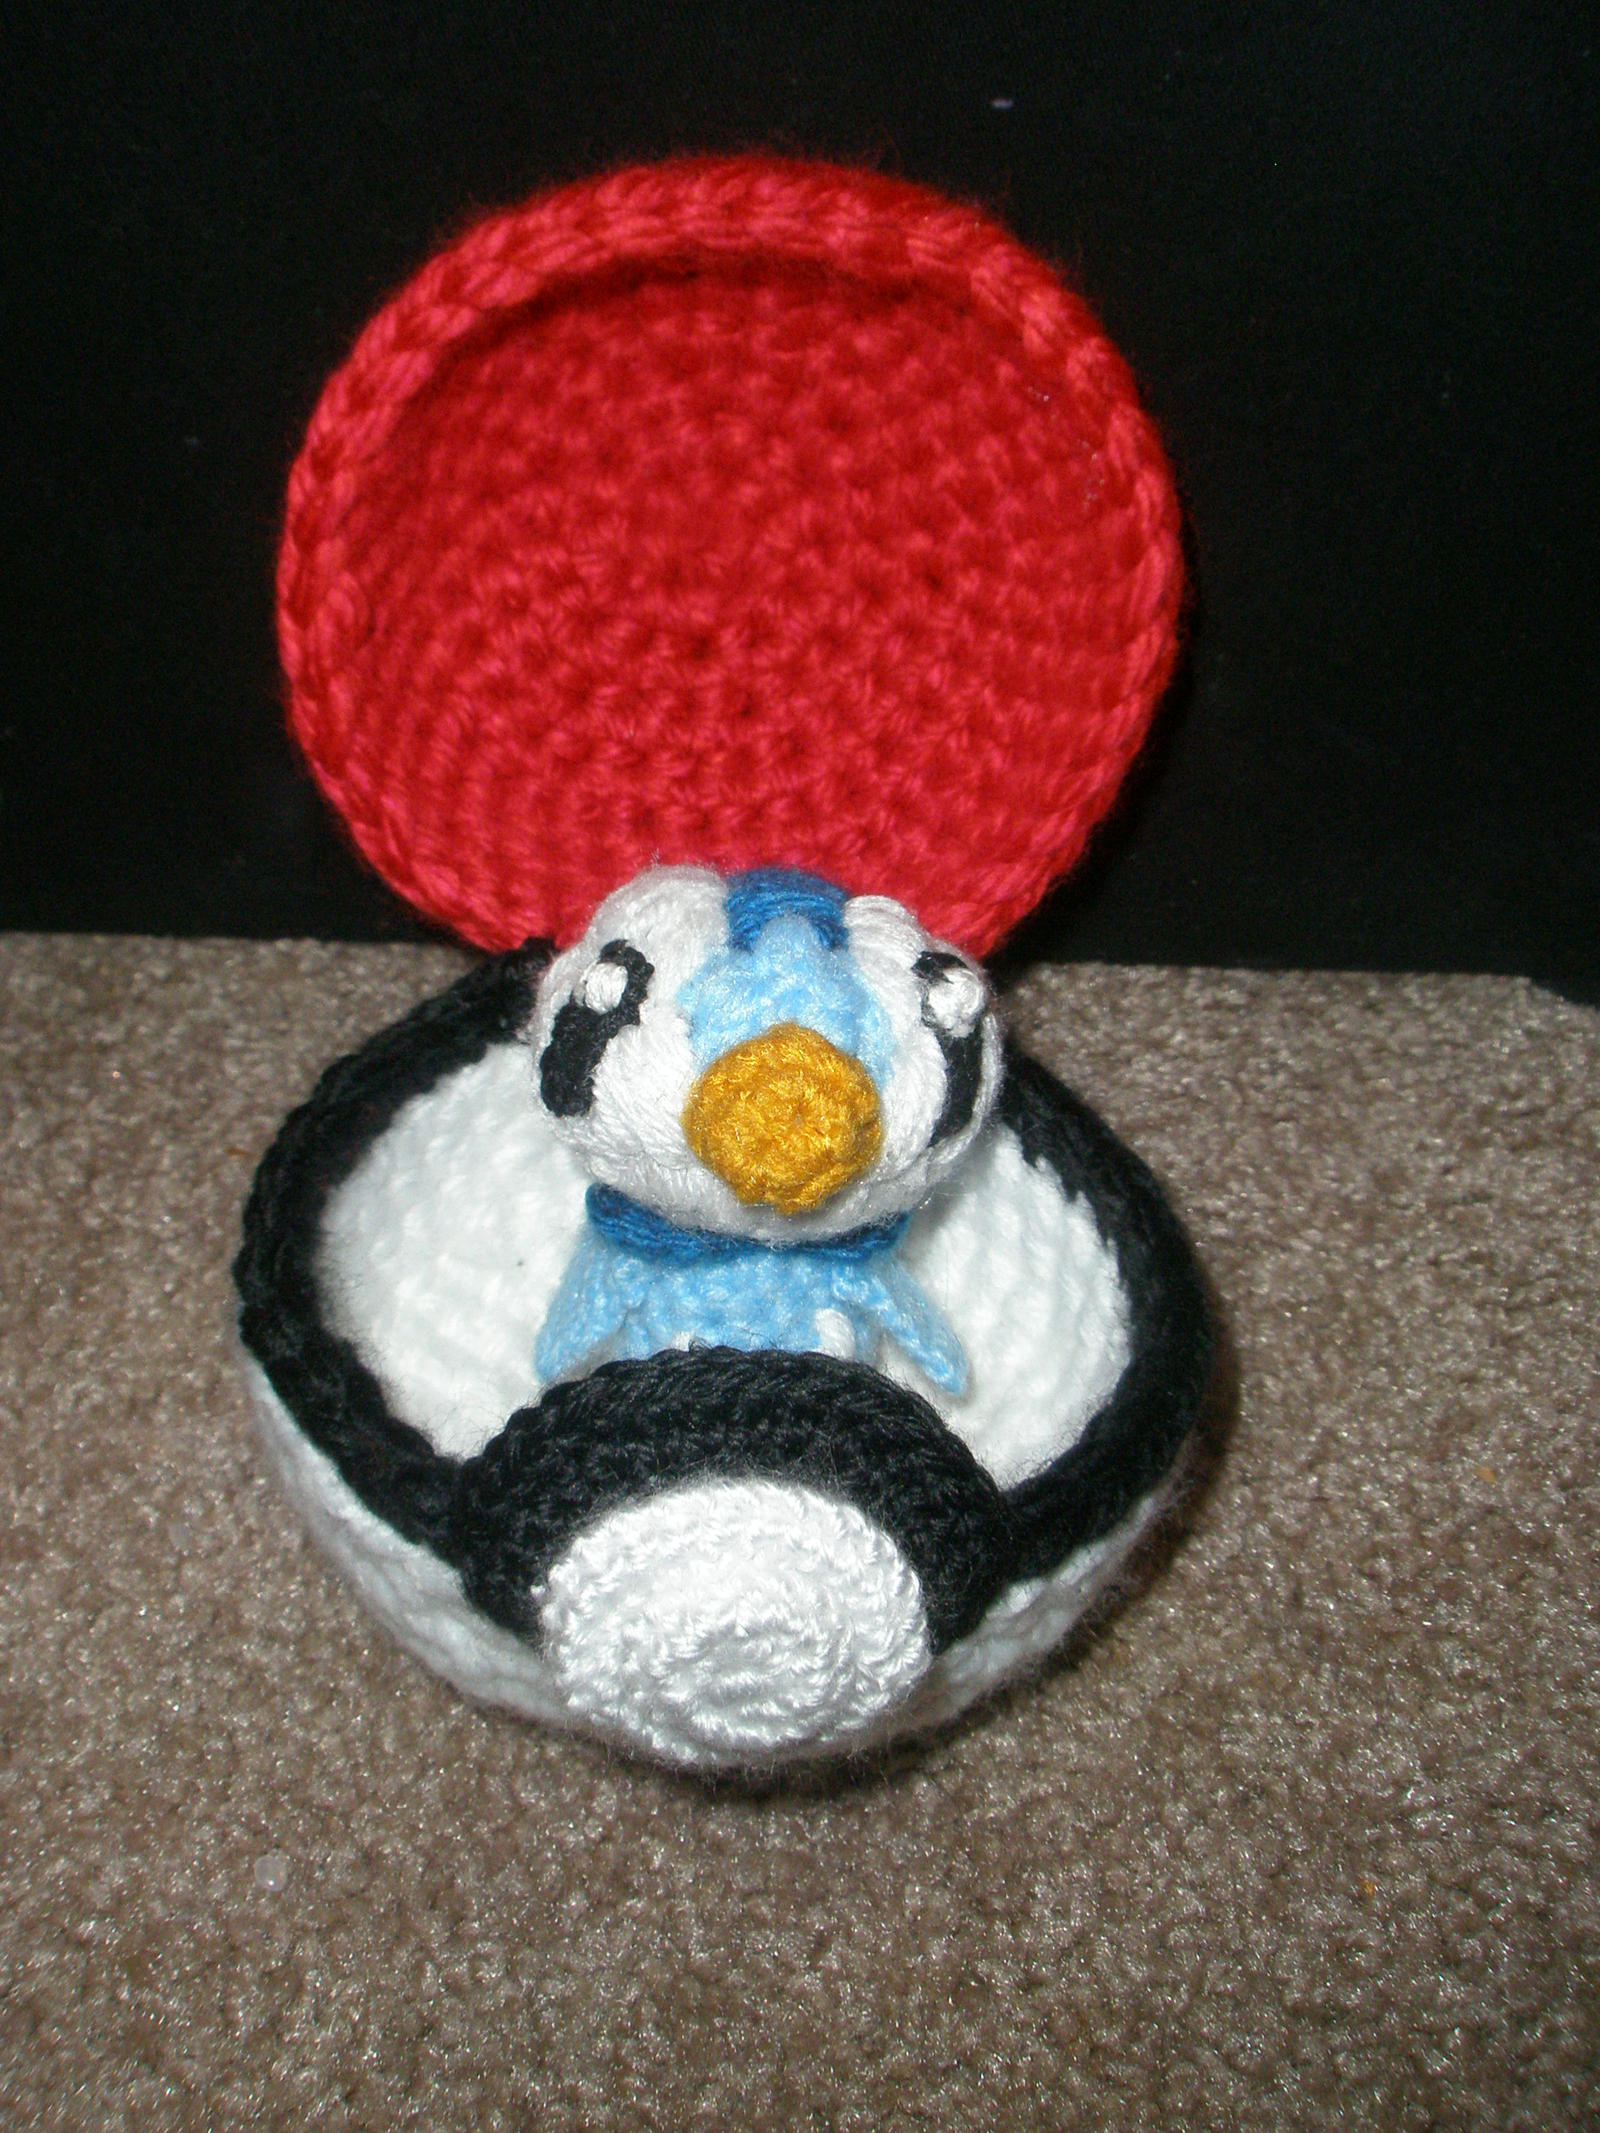 Functioning Pokeball + Piplup by TheHarley on DeviantArt